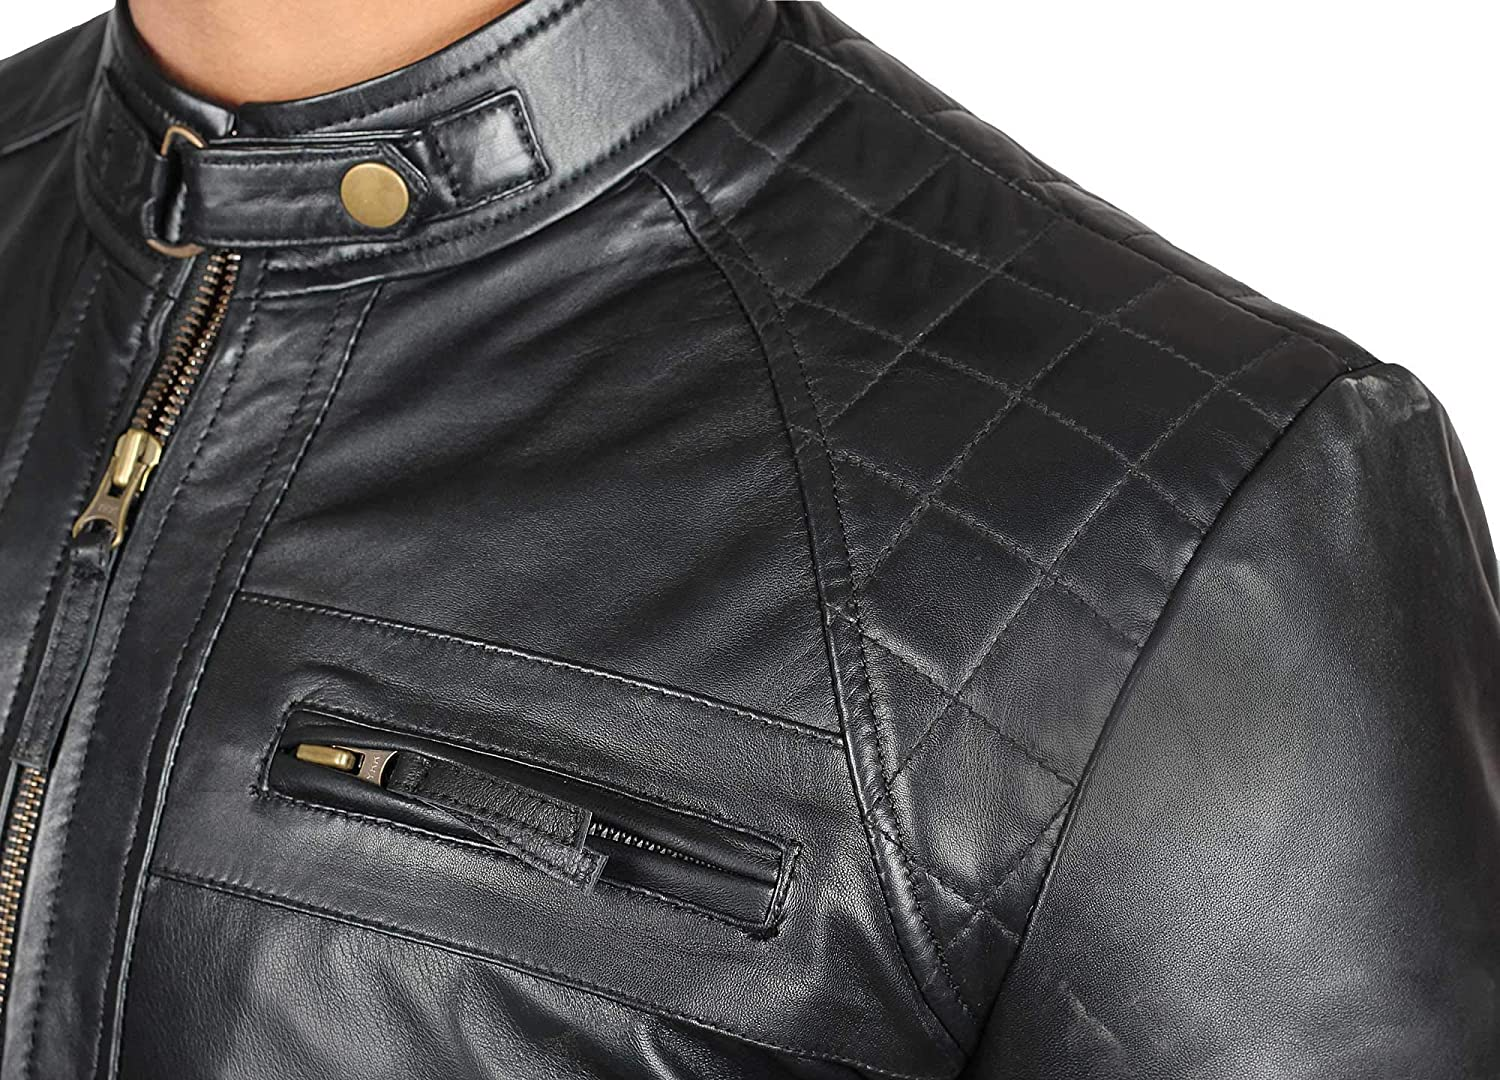 edf69831c0fba Mens Leather Jacket for Biker - Distressed Genuine Lambskin Brown Leather  Jacket Men at Amazon Men s Clothing store